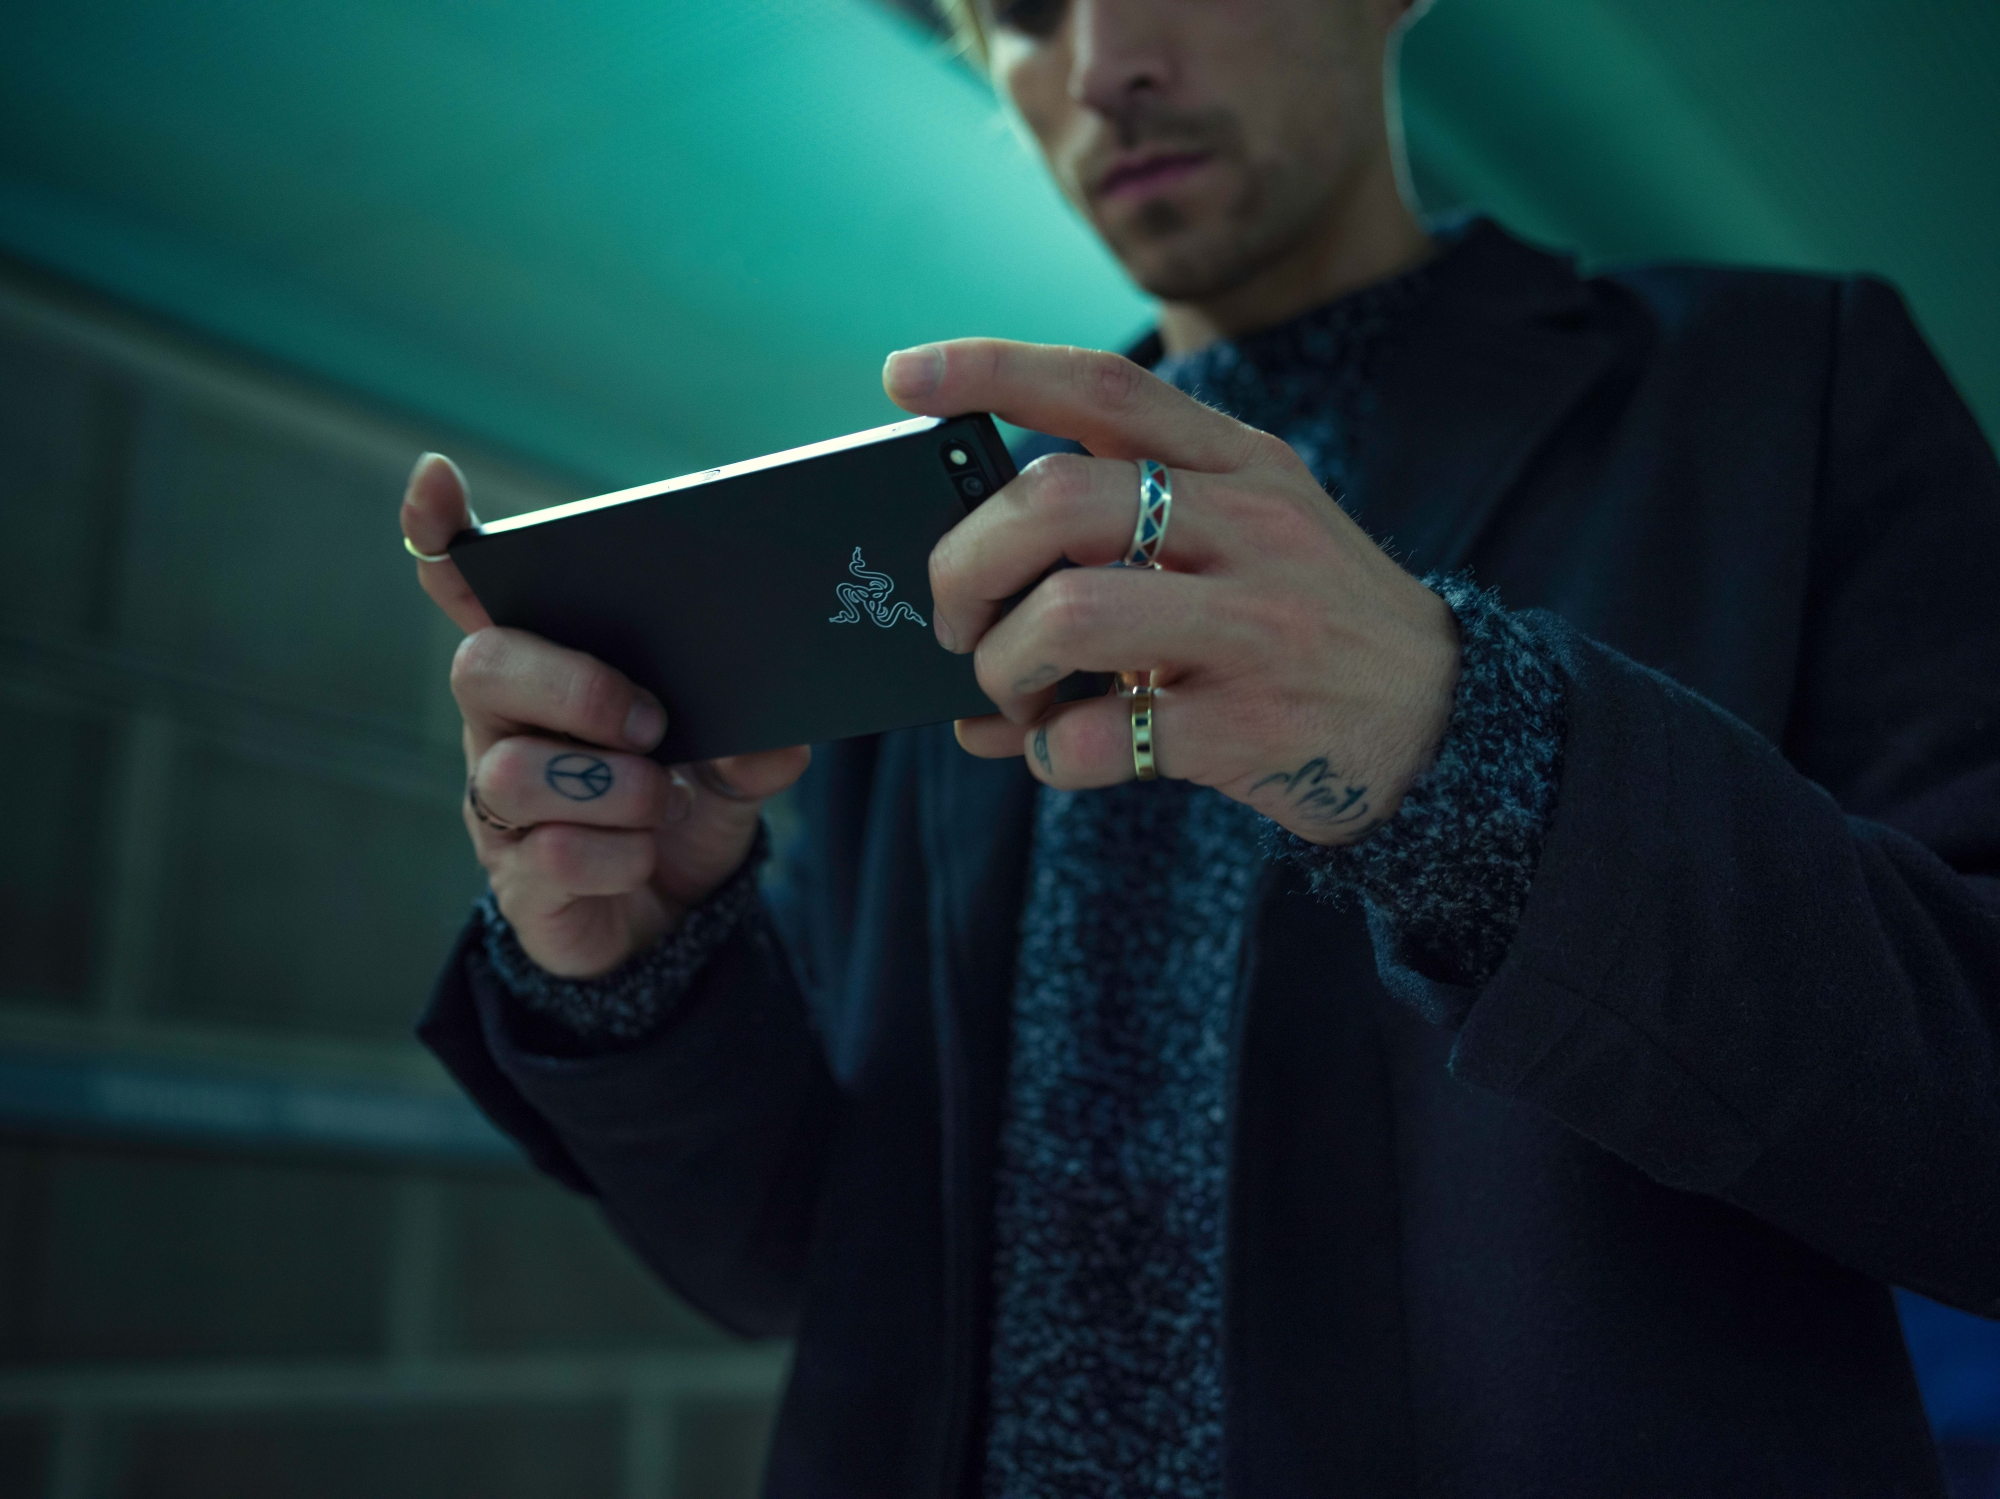 Razer-Phone-Lifestyle-05